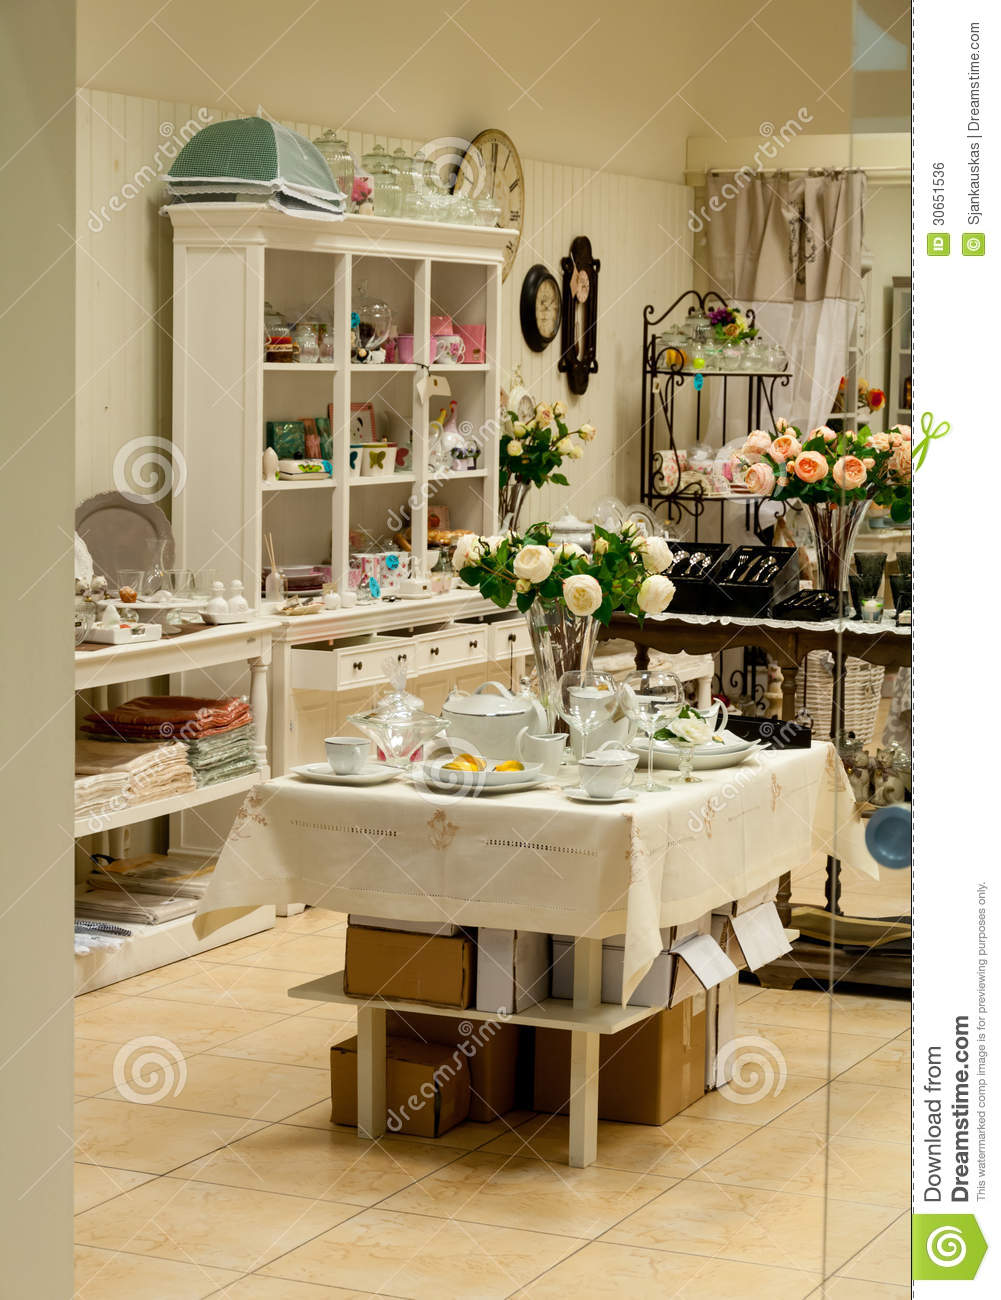 Home decor and dishes shop royalty free stock image for House of decor